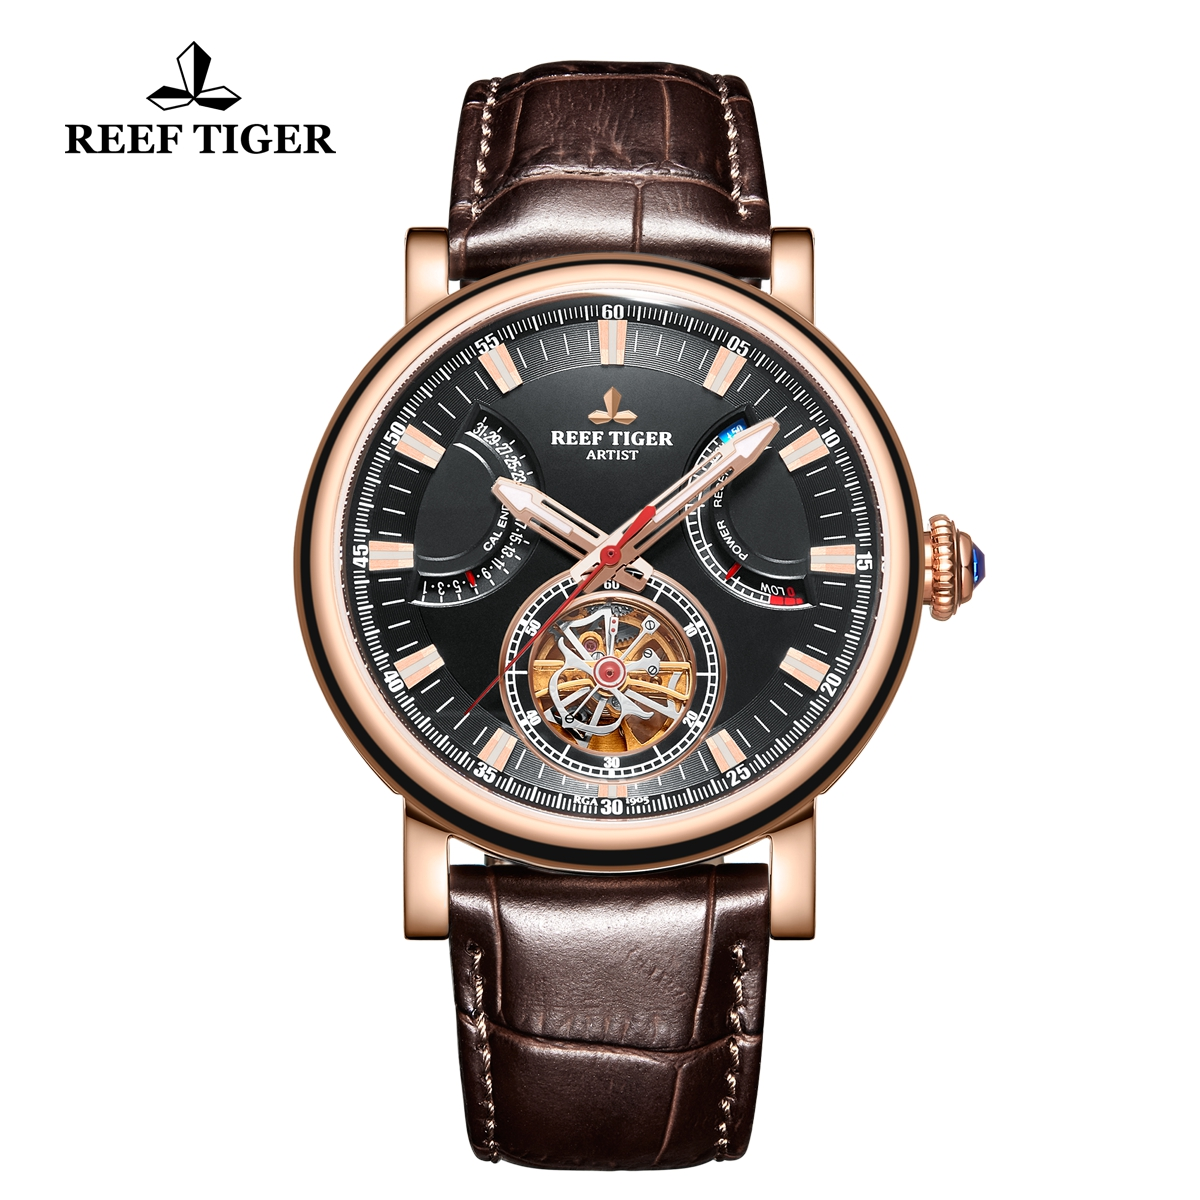 Reef Tiger Artist Photographer Rose Gold Brown Leather Strap Black Dial Tourbillon Automatic Watch RGA1950-PBW